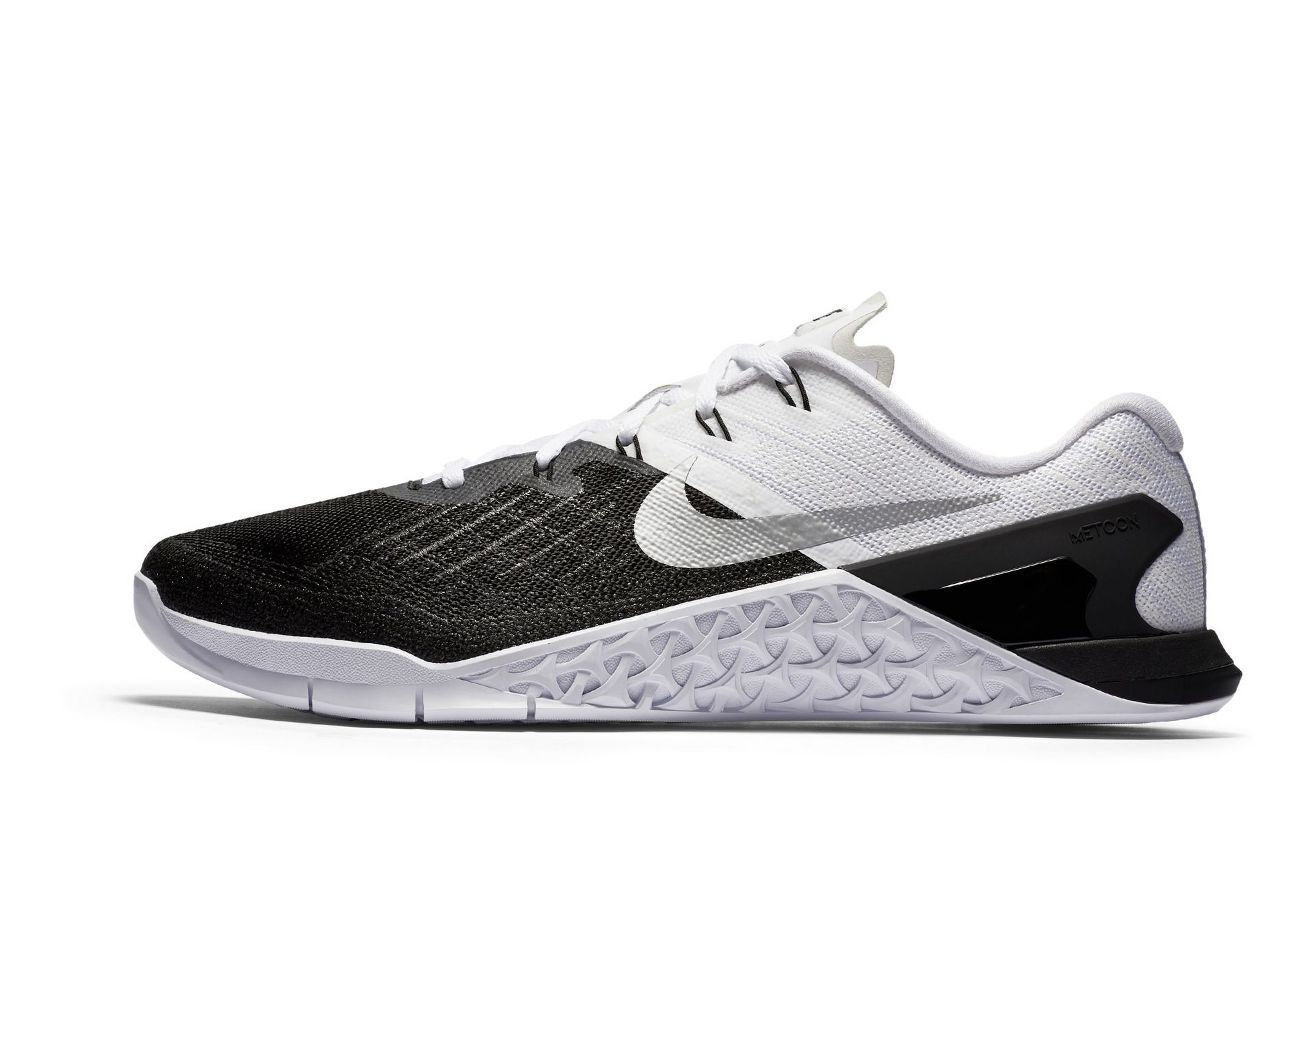 Men's Nike Metcon 3 Blk Wht crossfit open games training lifter olympic  lifting